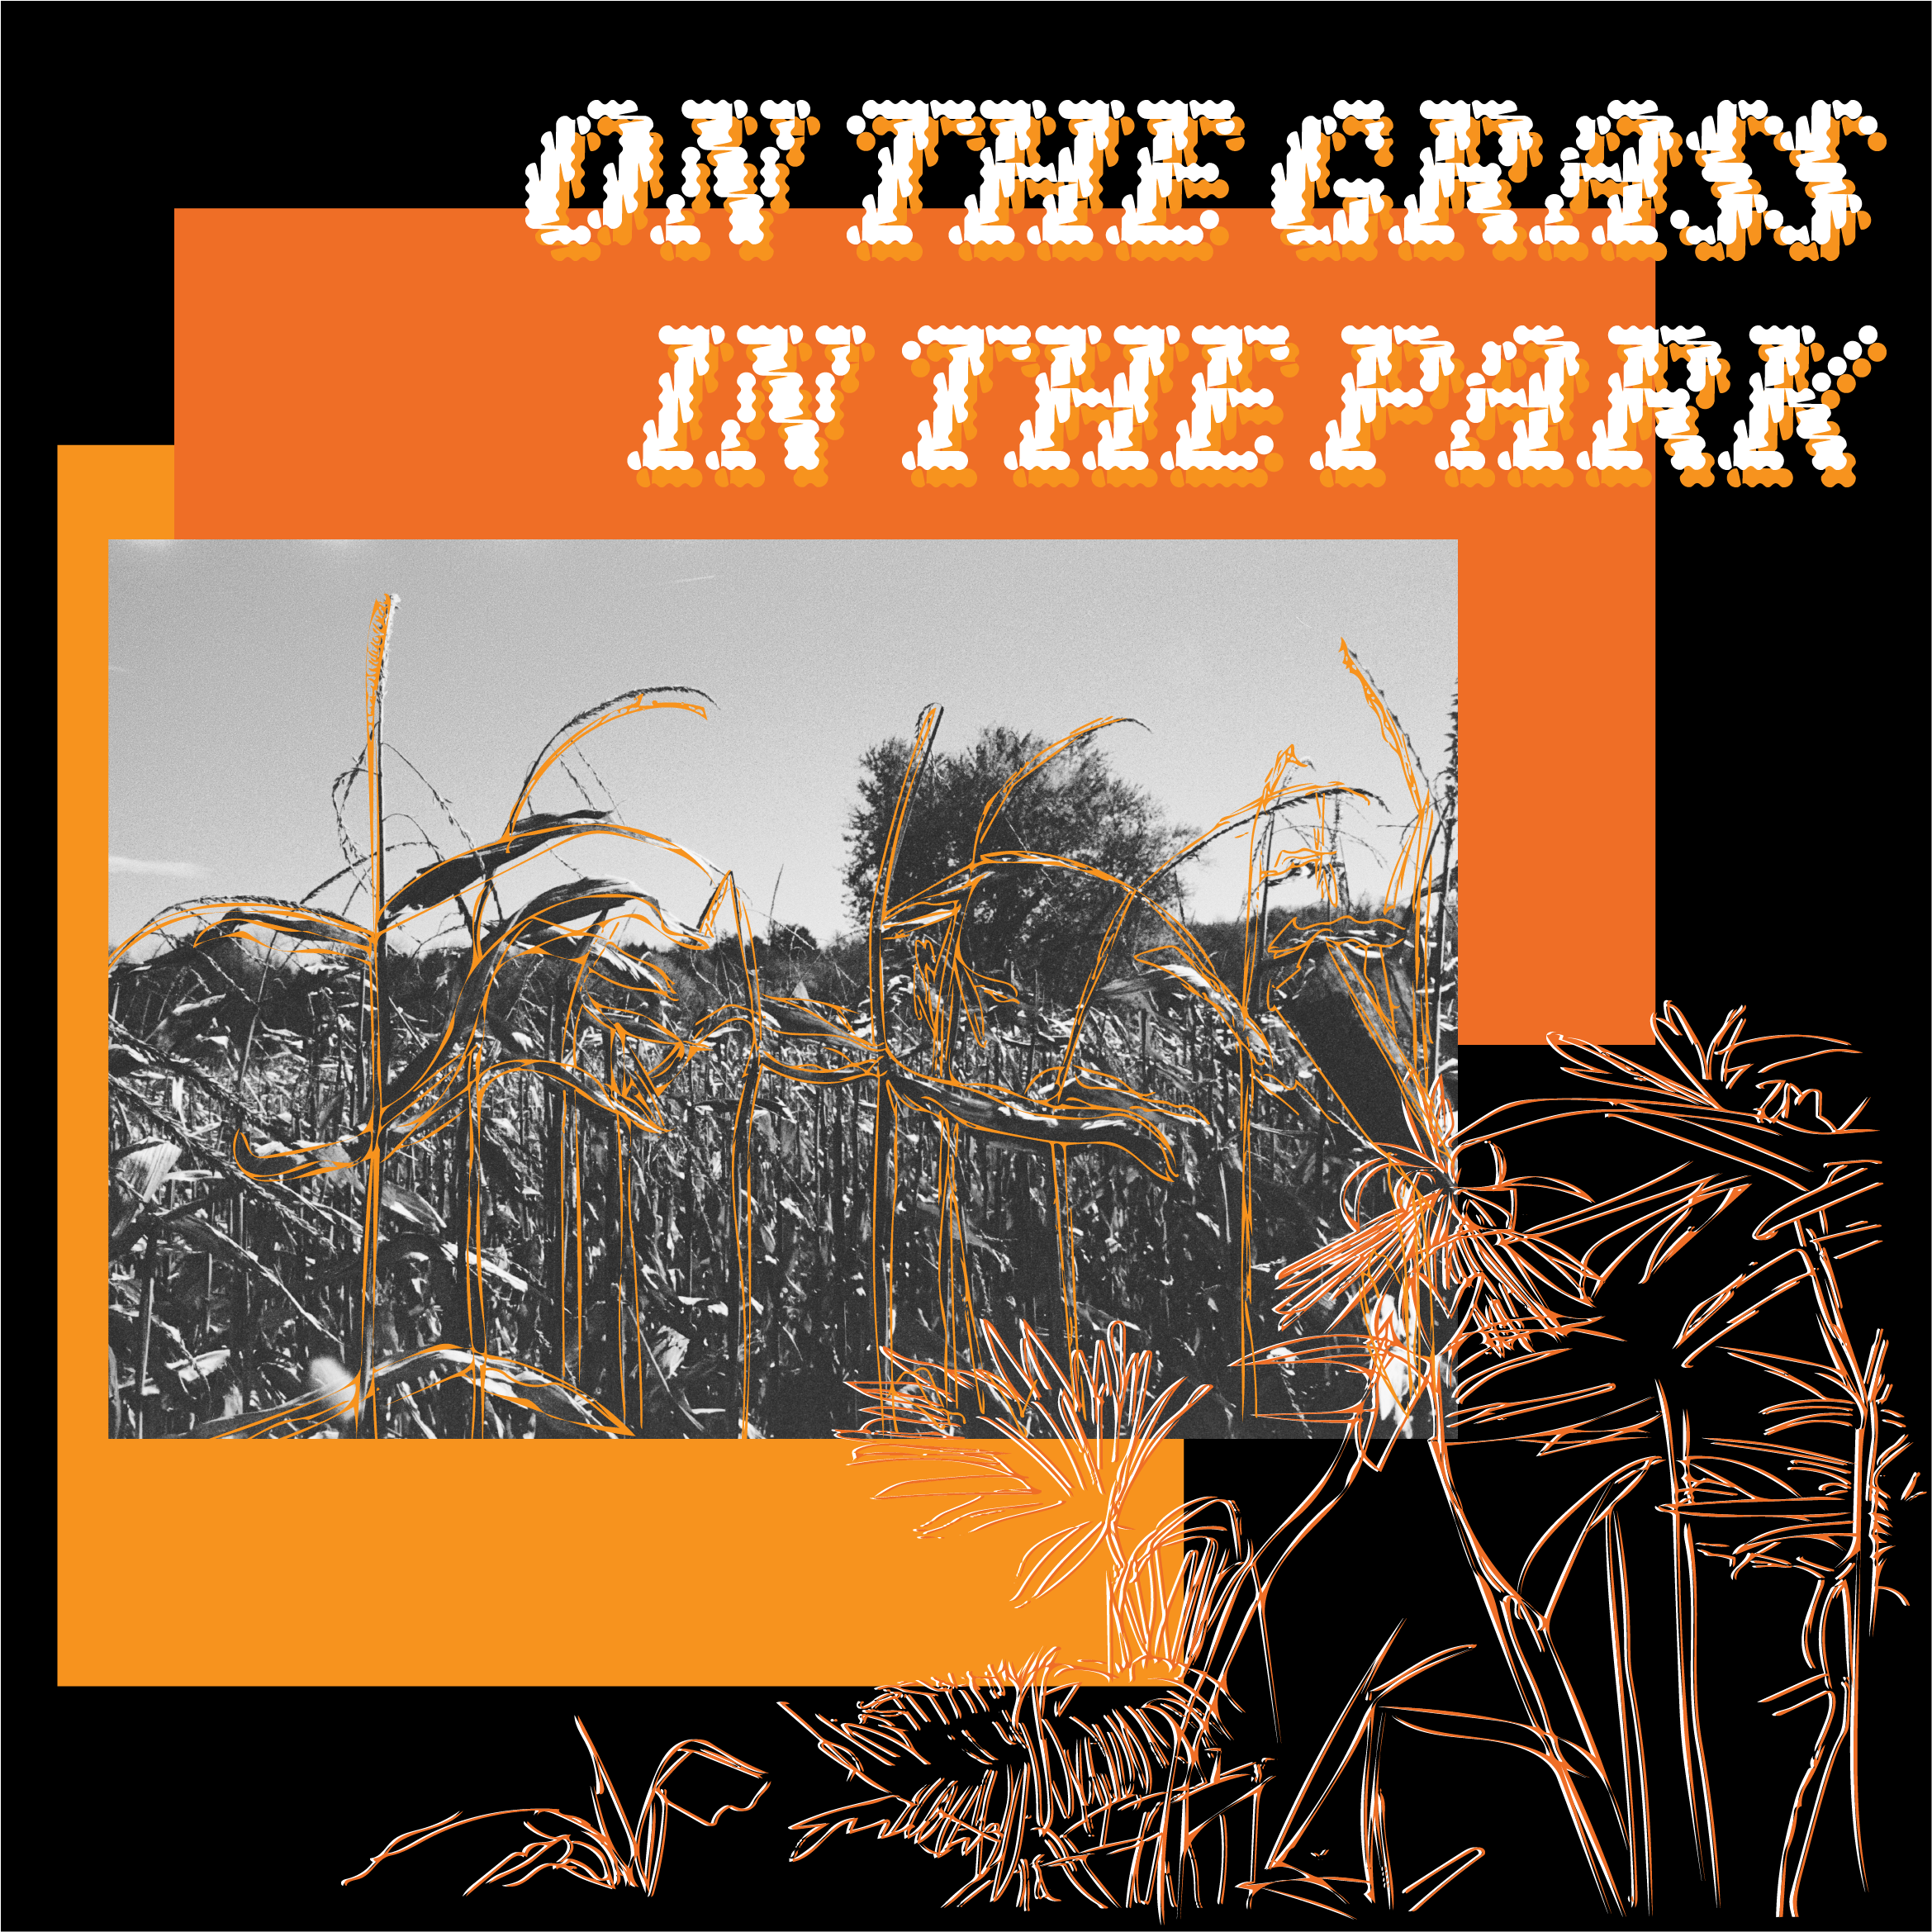 On The Grass In The Park by Grace Karls